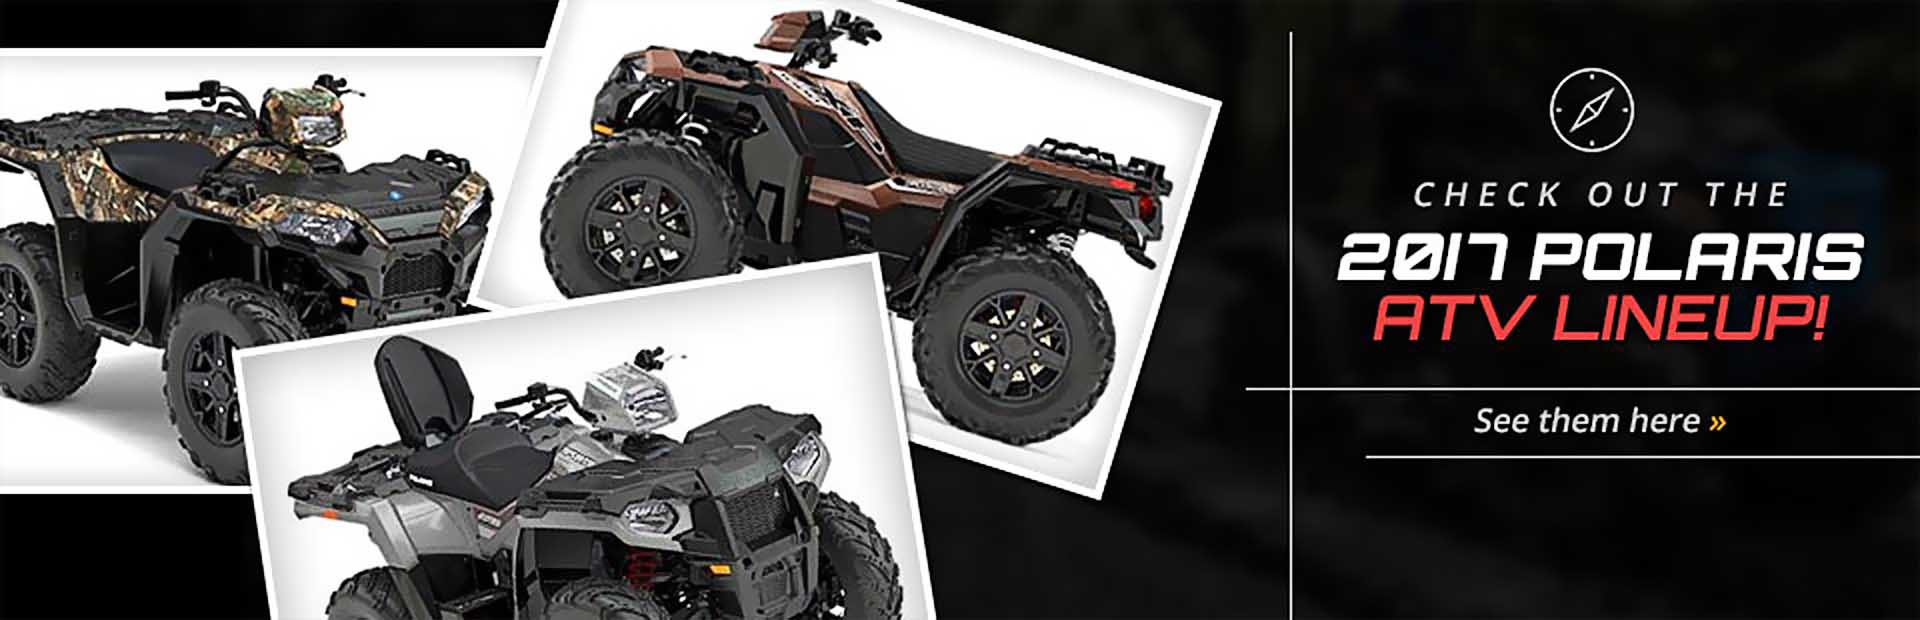 2017 Polaris ATVs: Click here to view the lineup.